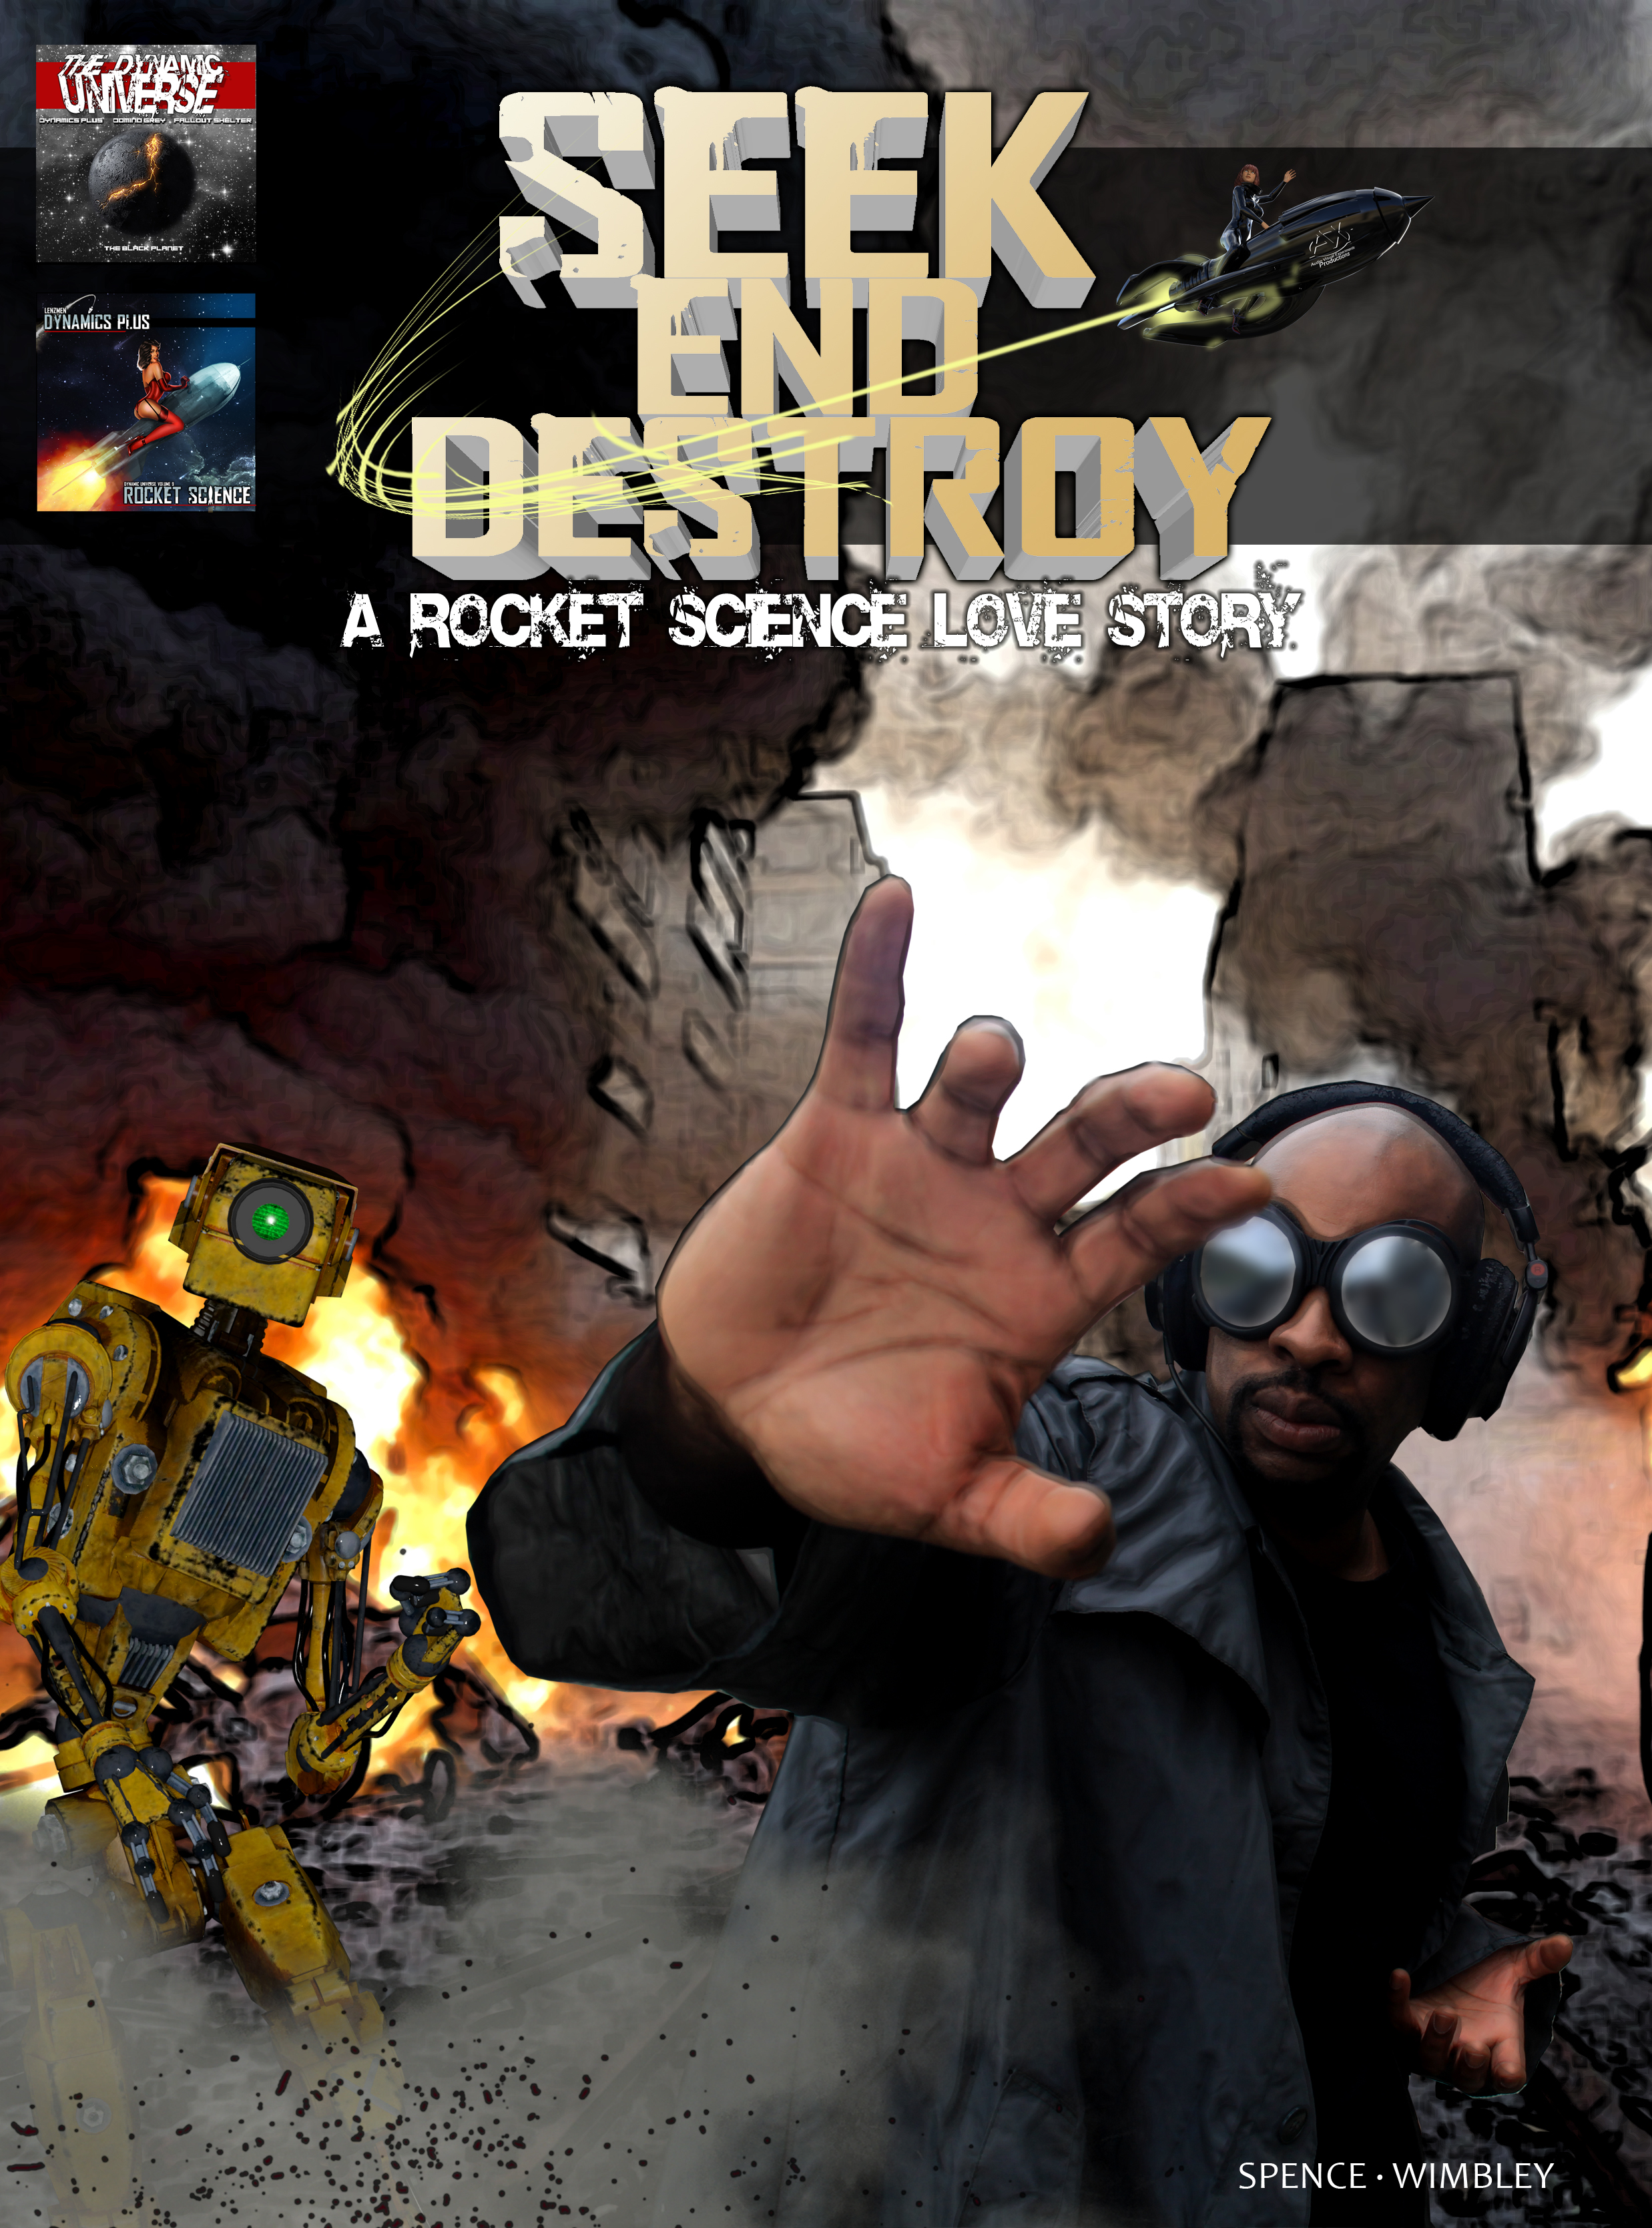 Seek End Destroy comic cover